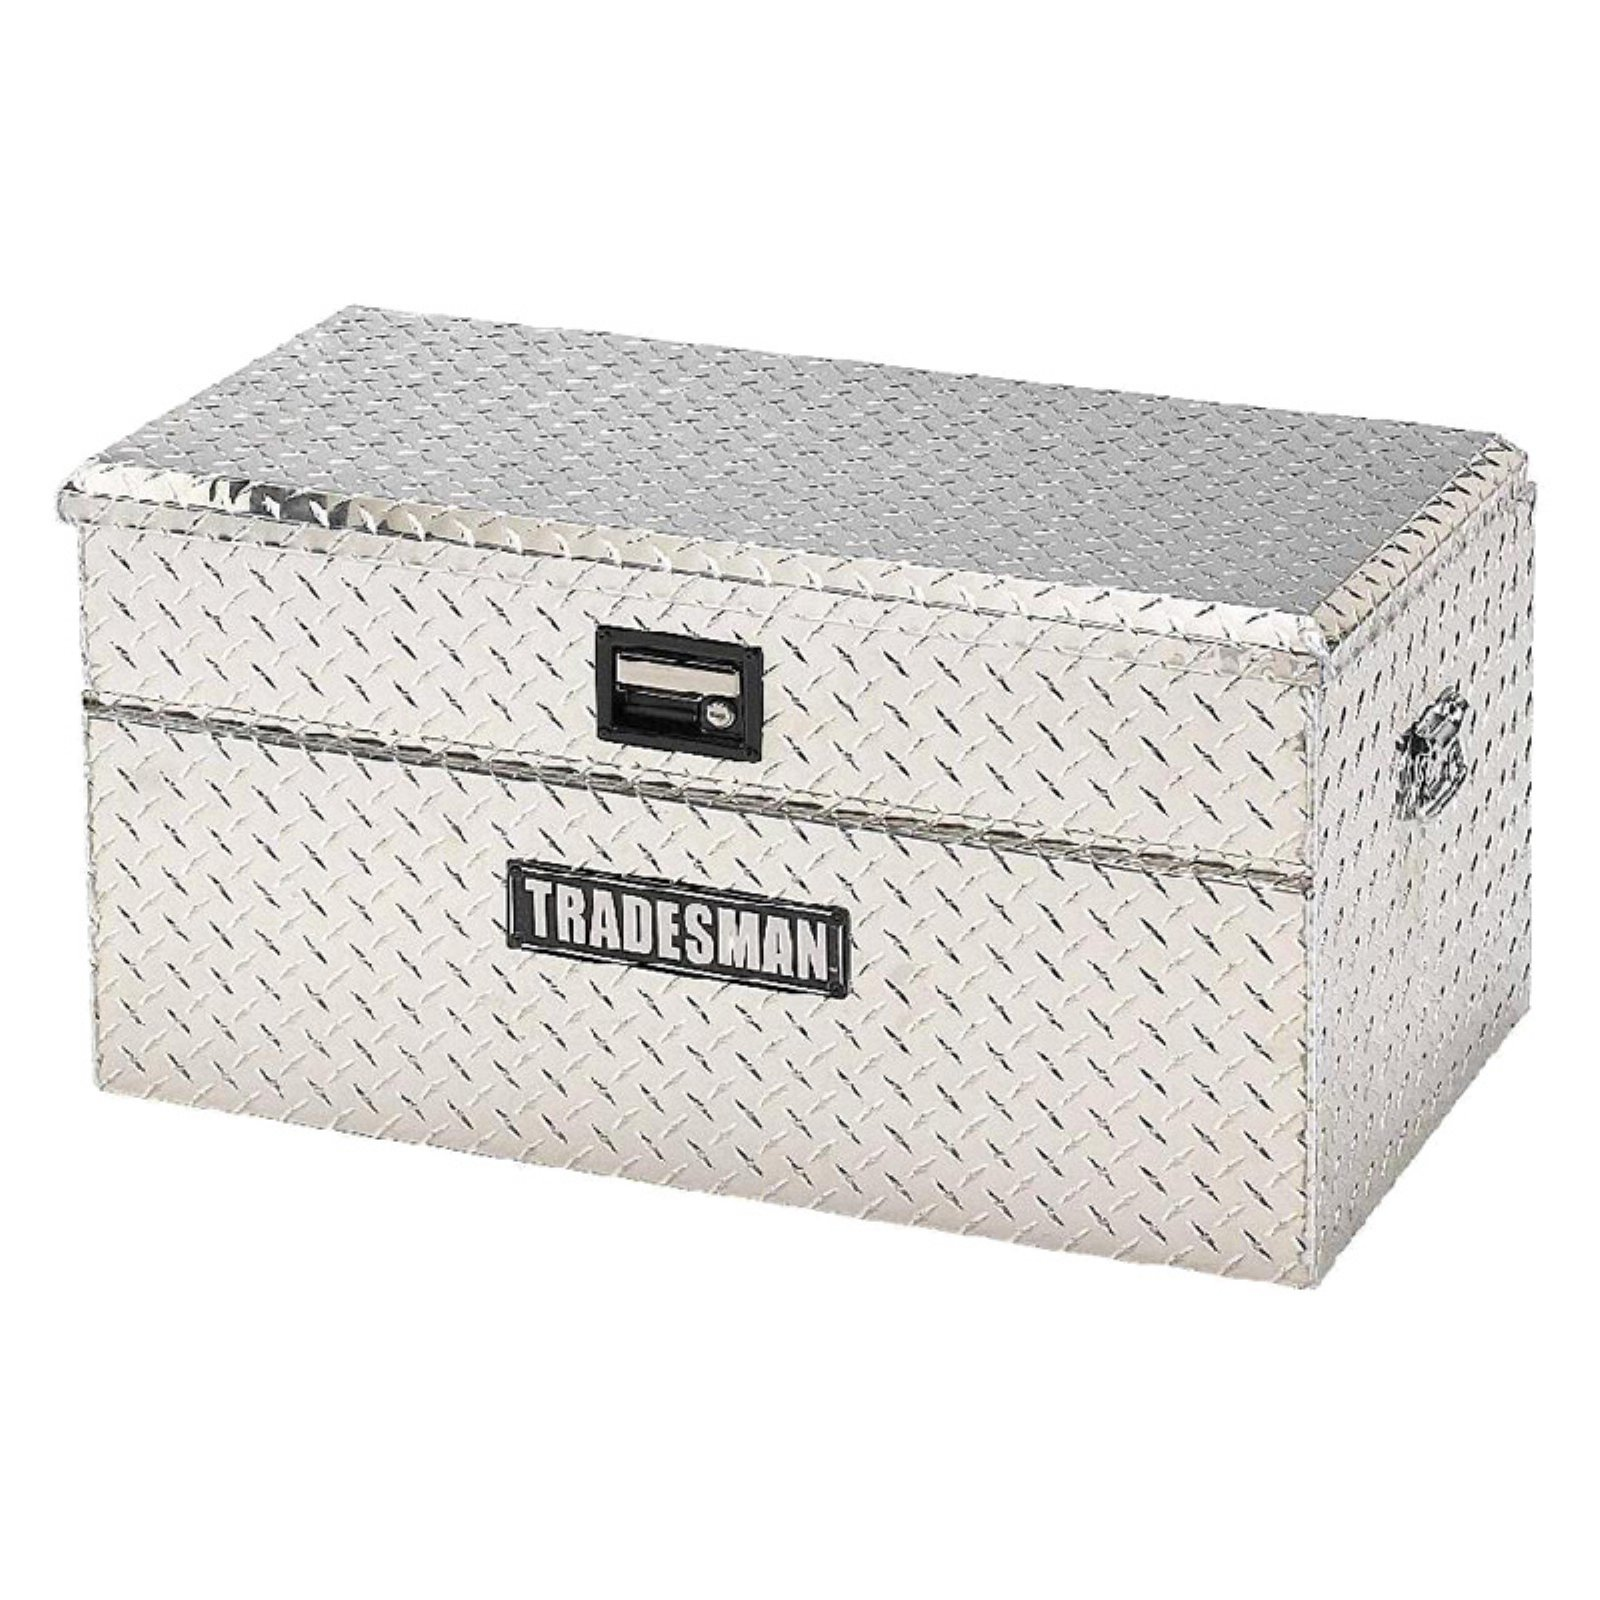 Tradesman Aluminum Workbox with Handles